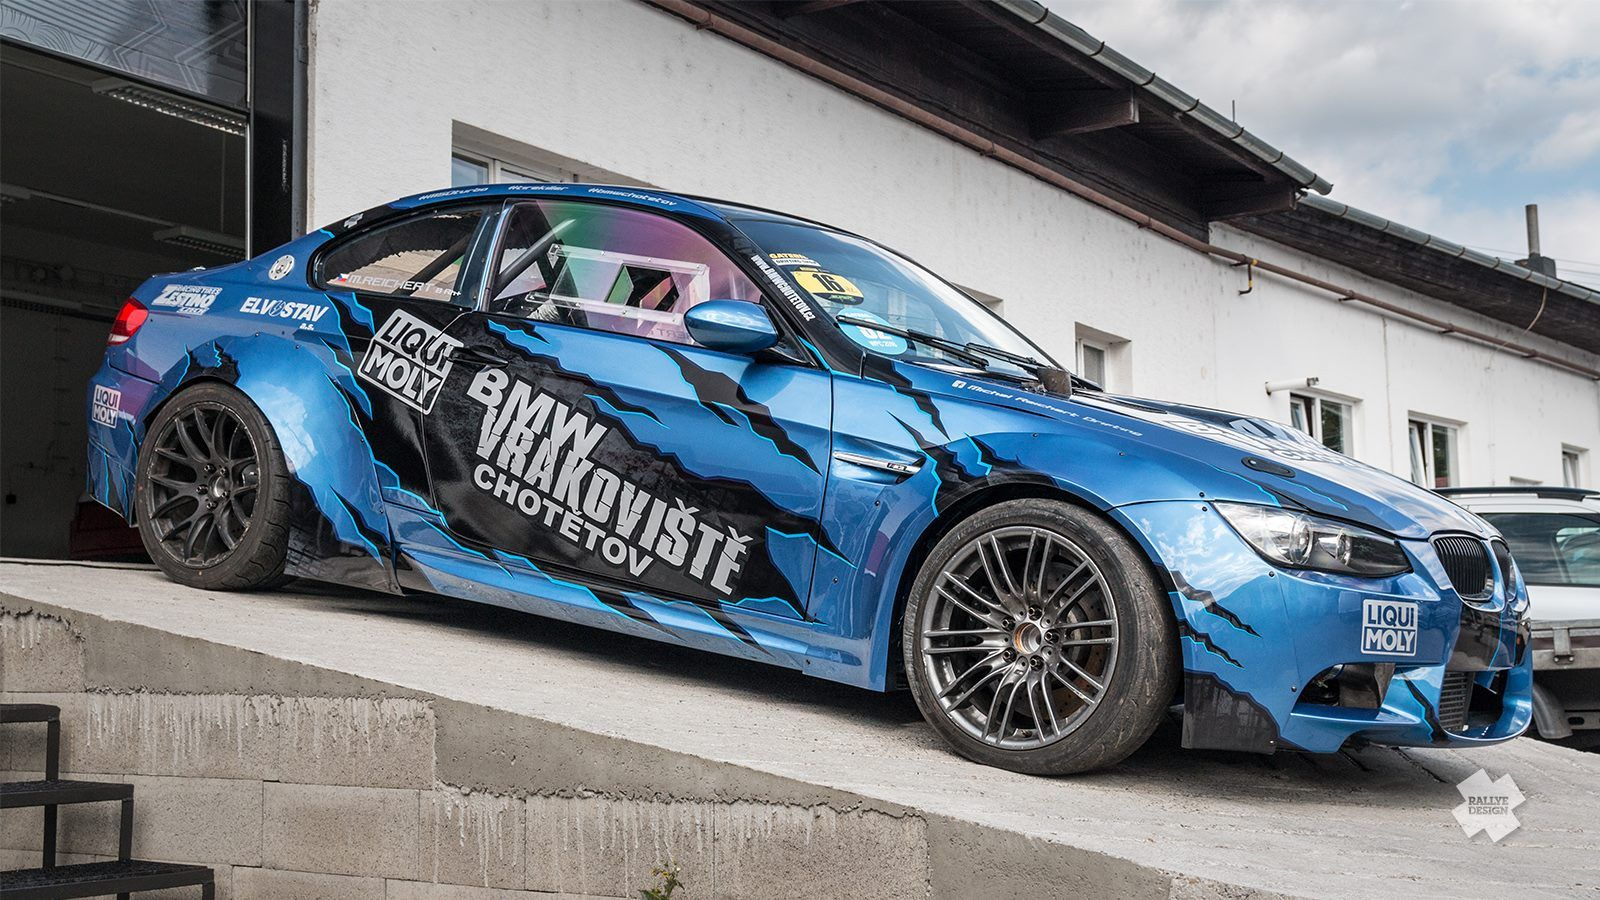 Exceptional Design For Michal Reichert Drifting And His BMW M3 E92 By Rallye Design